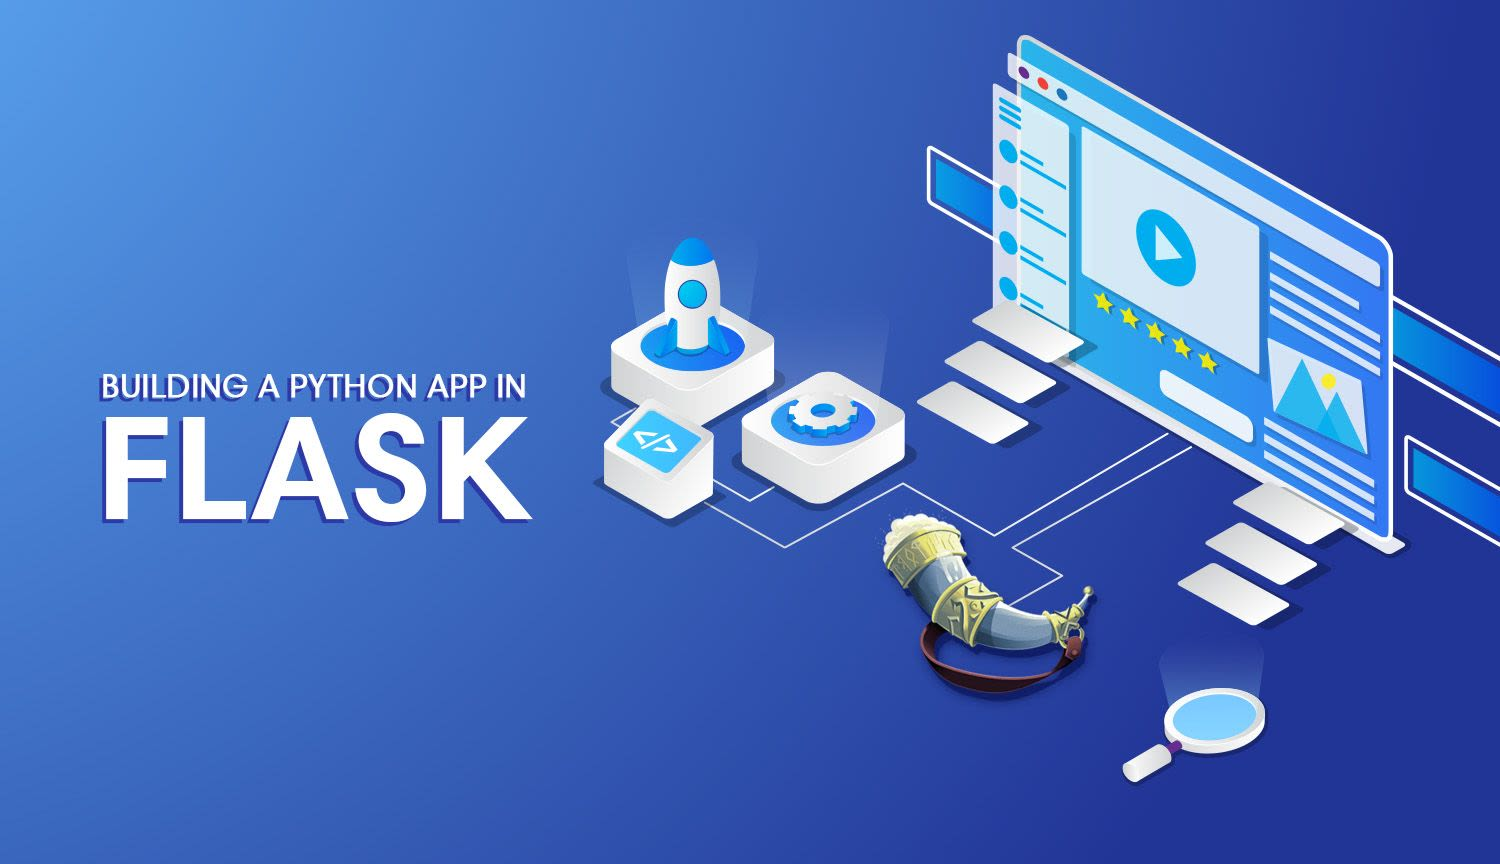 #Building Flask Apps